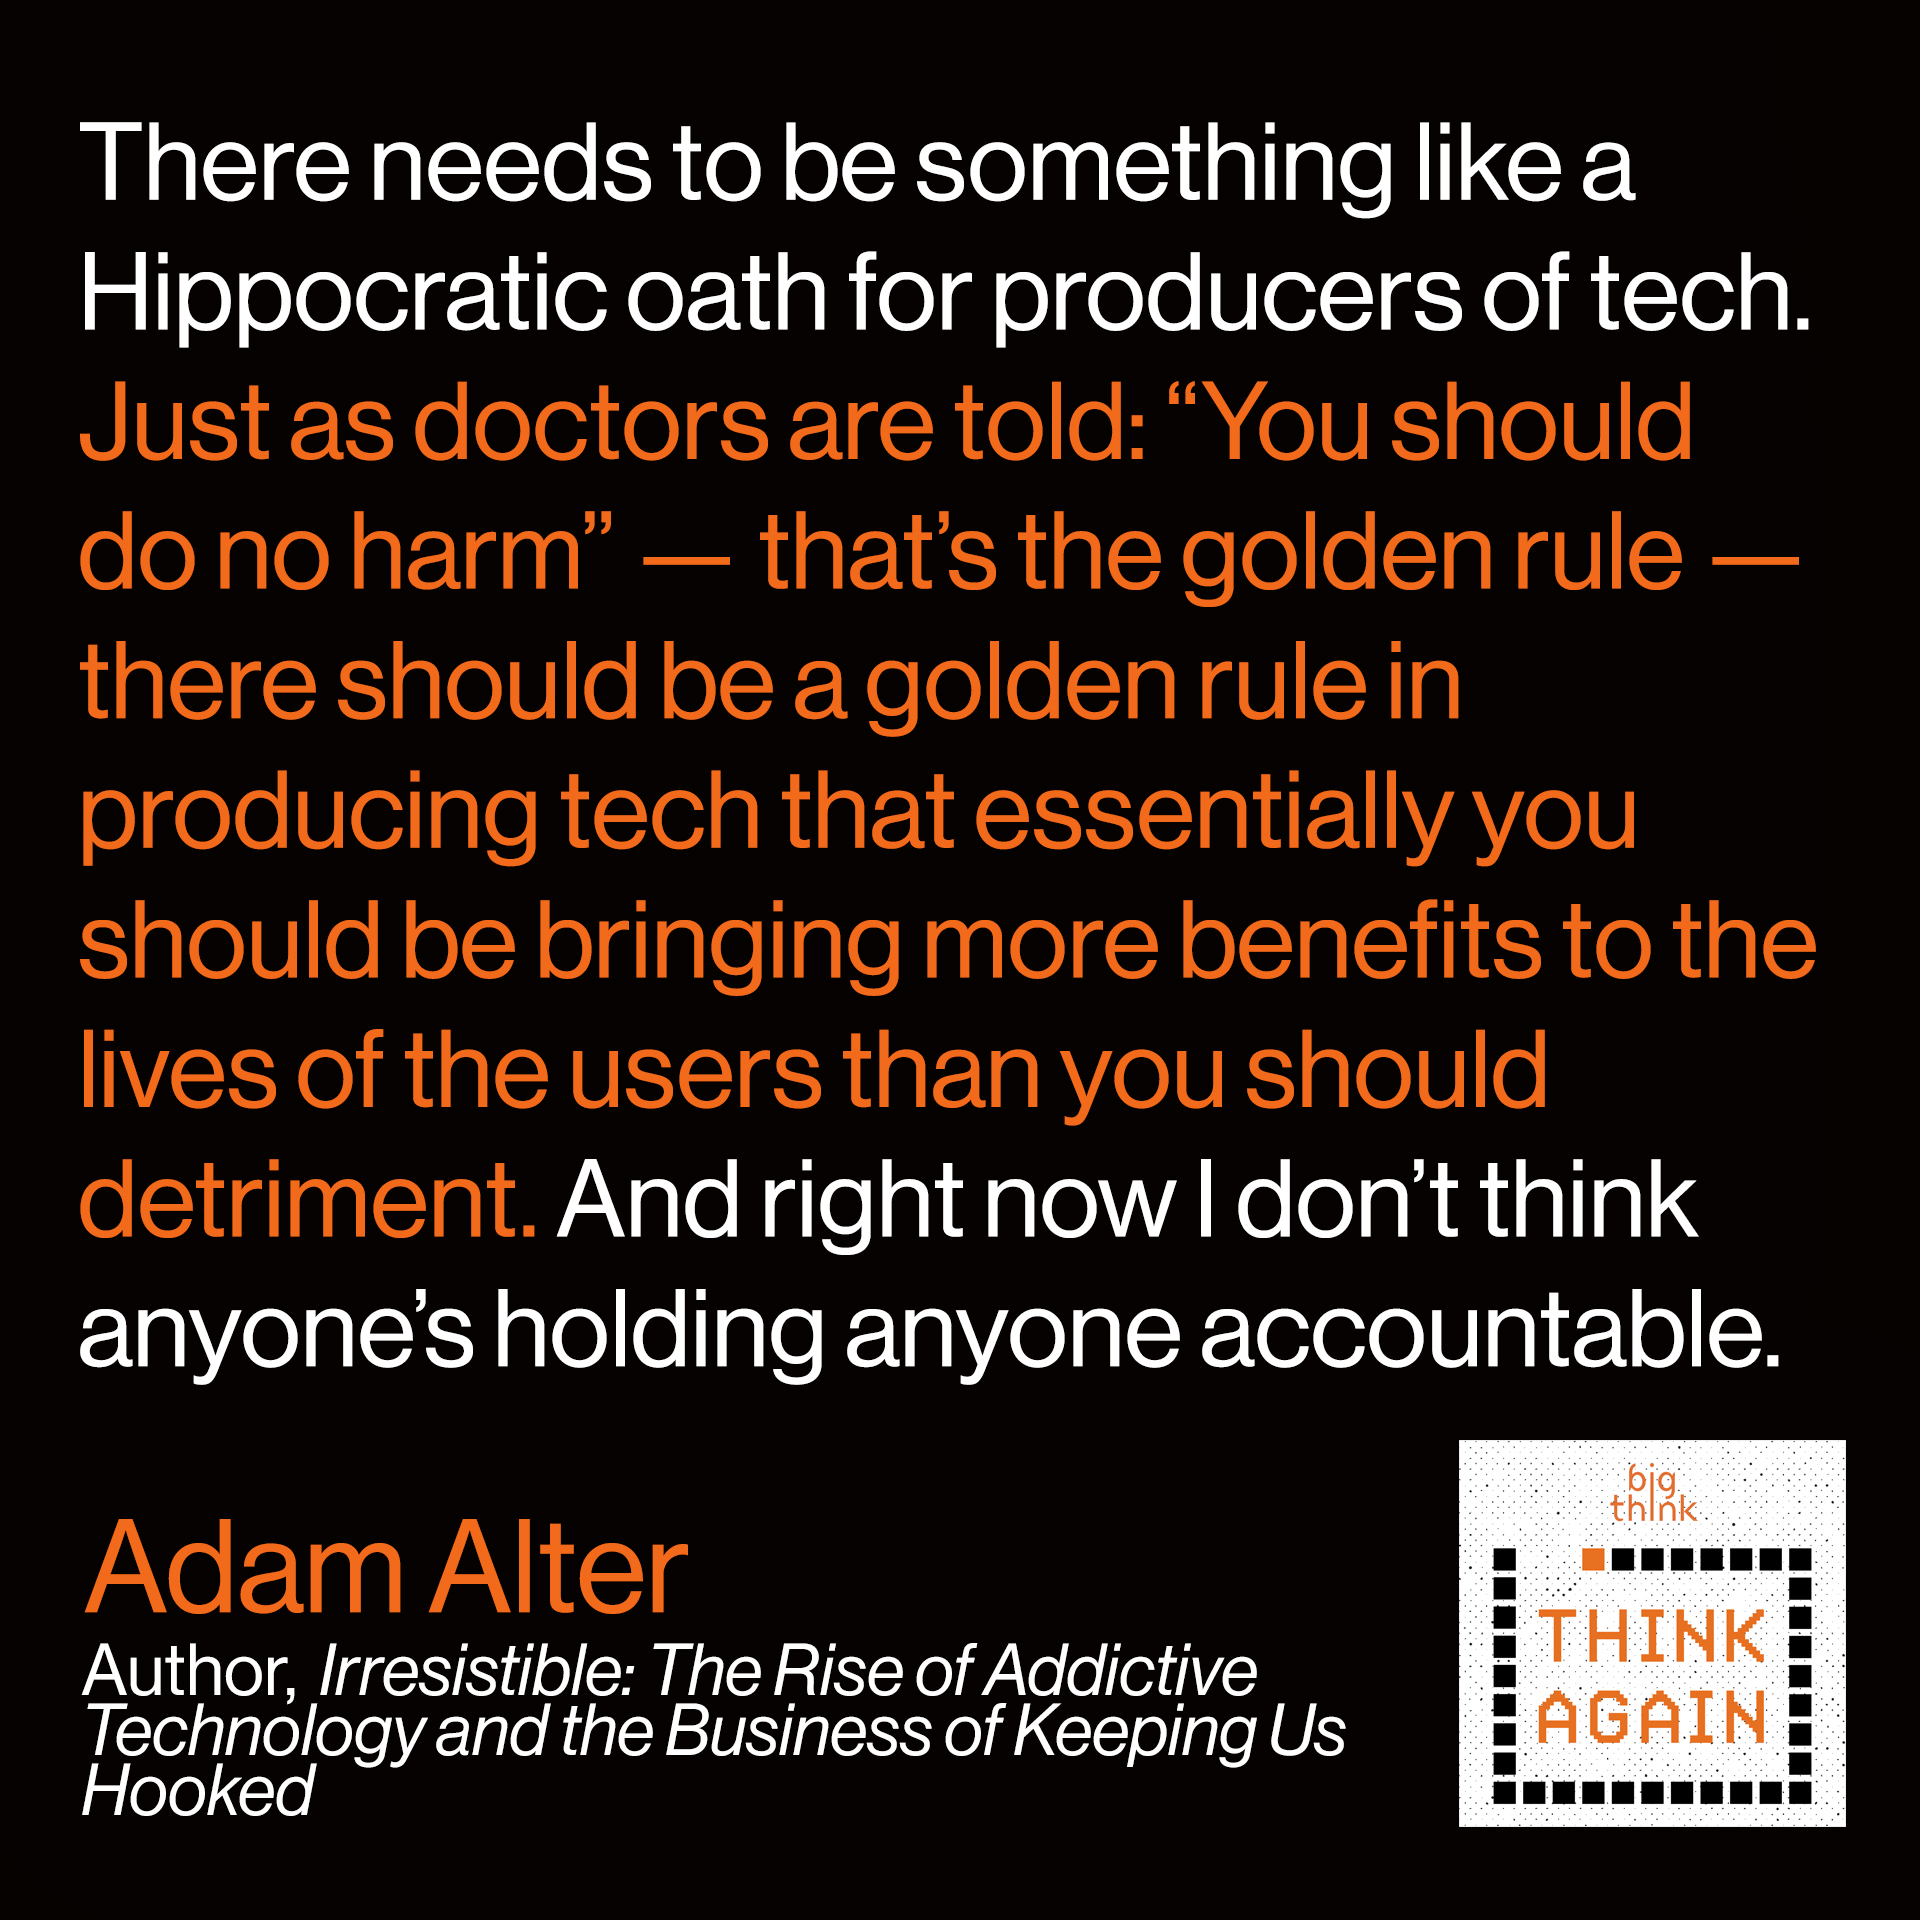 """Adam Alter Quote:There needs to be something like a Hippocratic oath for producers of tech. That just as doctors are told """"you should do no harm"""" — that's the golden rule — there should be a golden rule in producing tech that essentially you should be bringing more benefits to the lives of the users than you should detriment. And right now I don't think anyone's holding anyone accountable."""""""